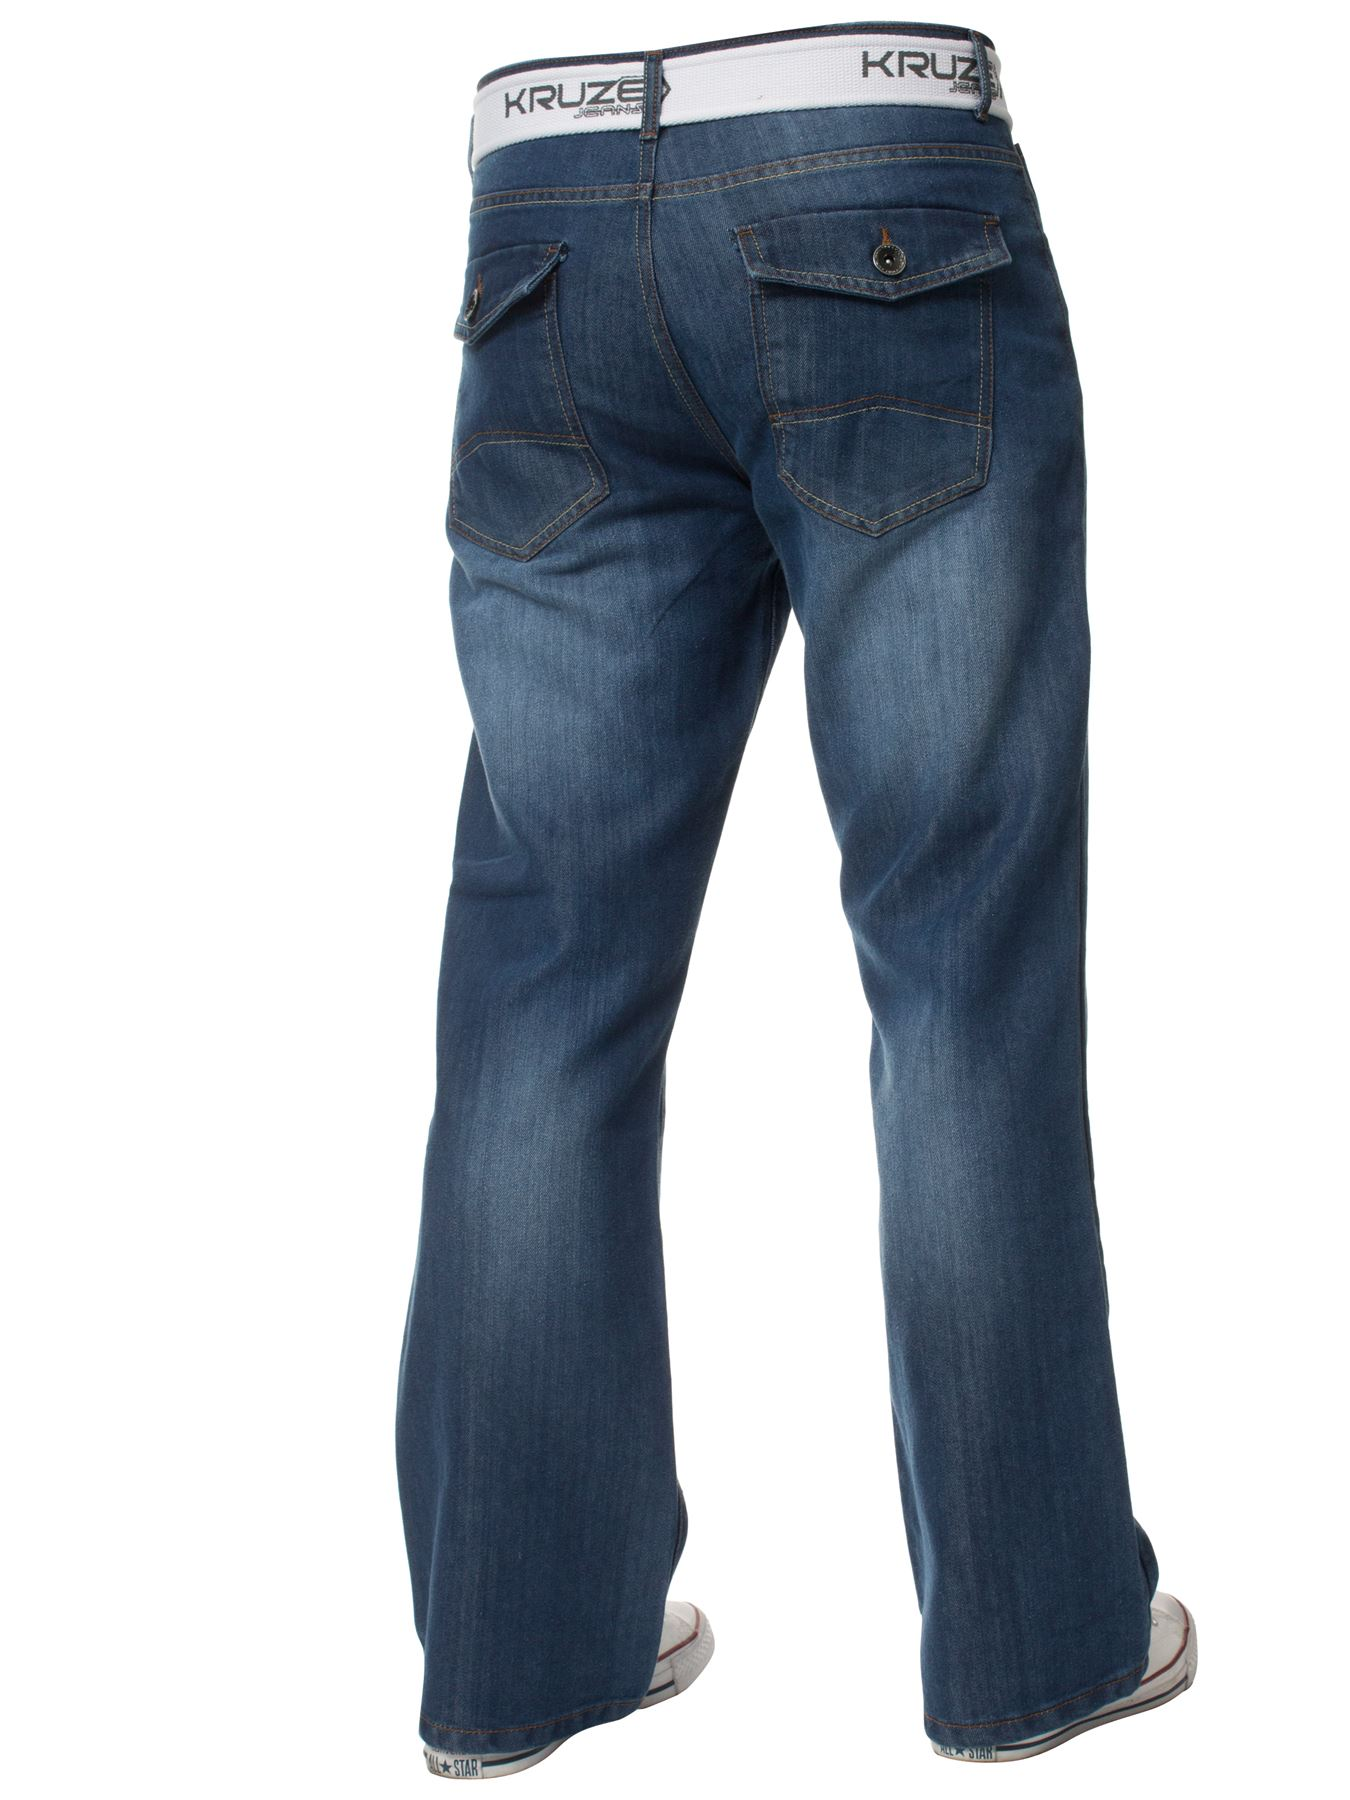 Kruze-Denim-New-Mens-Bootcut-Jeans-Wide-Leg-Flare-Pants-King-Big-All-Waist-Sizes thumbnail 23